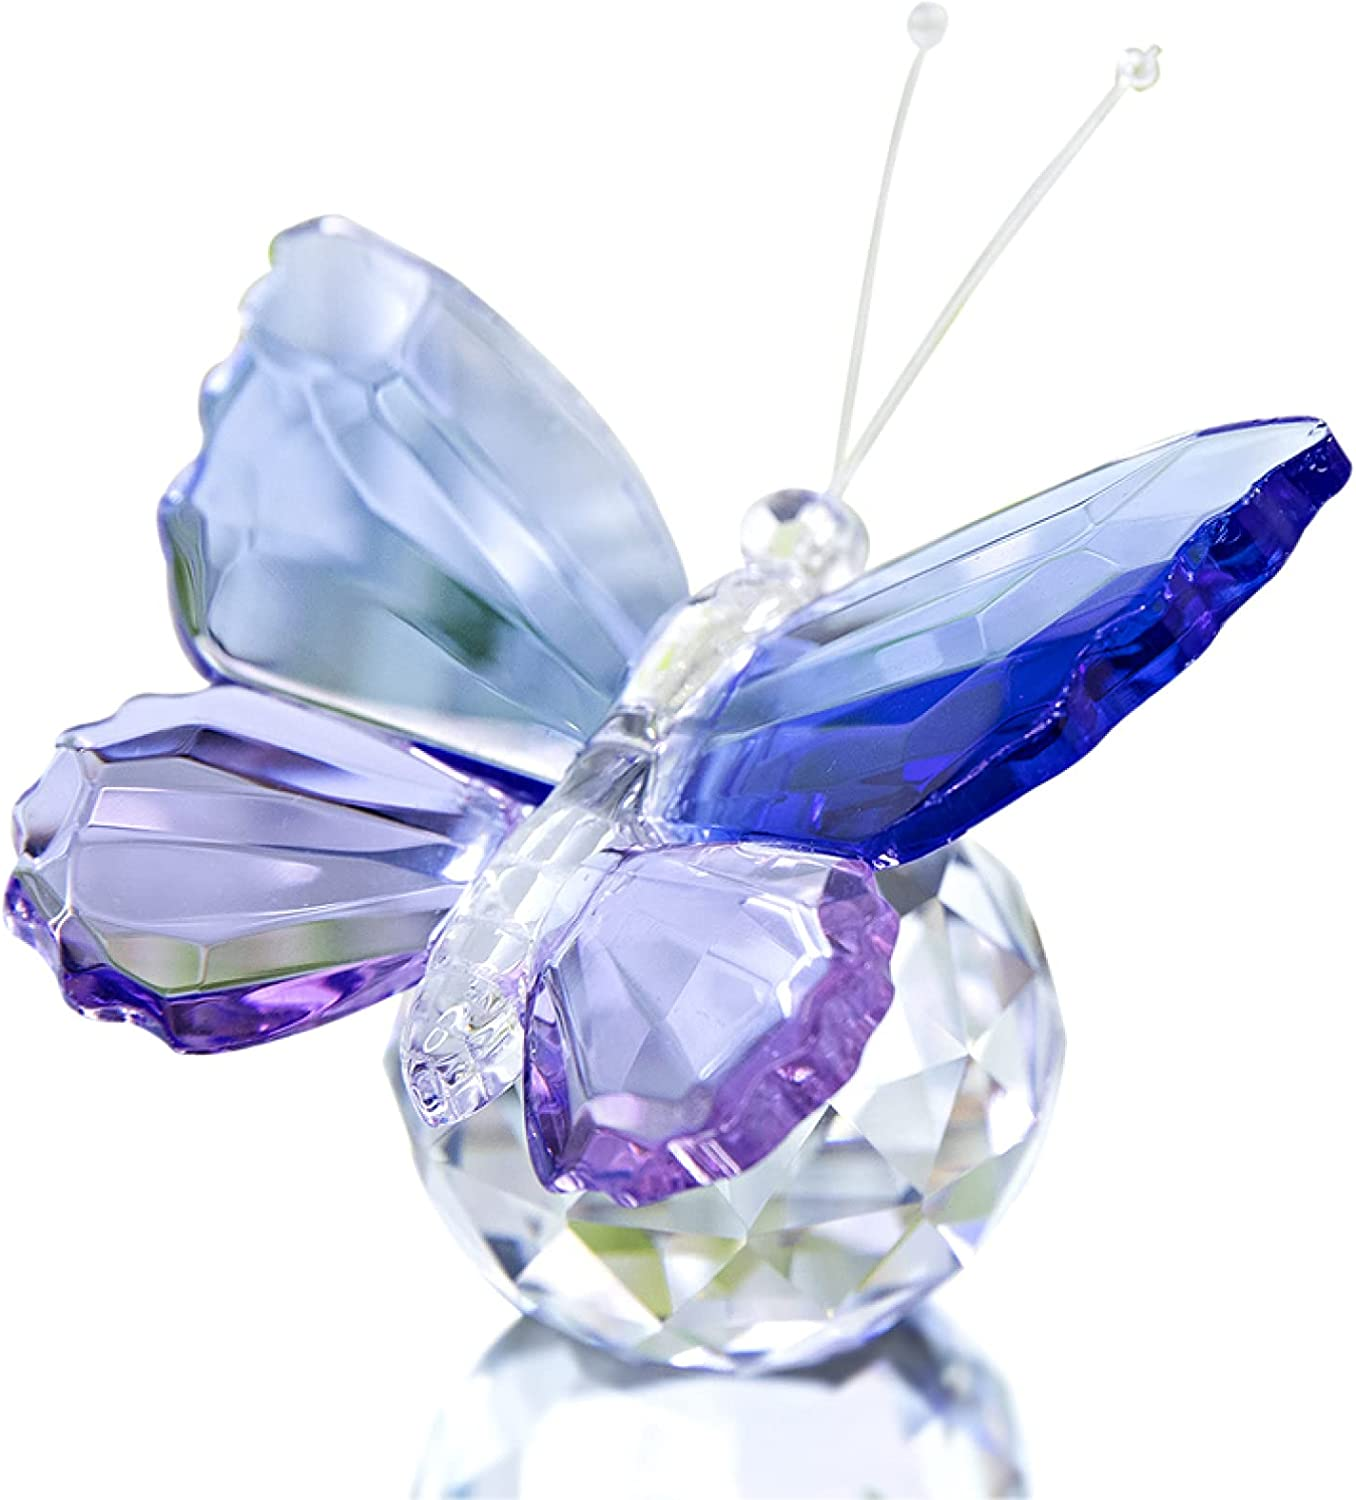 Crystal Butterfly 5 ☆ very popular Figurine Glass Animal Ornament Collectible Dec High order